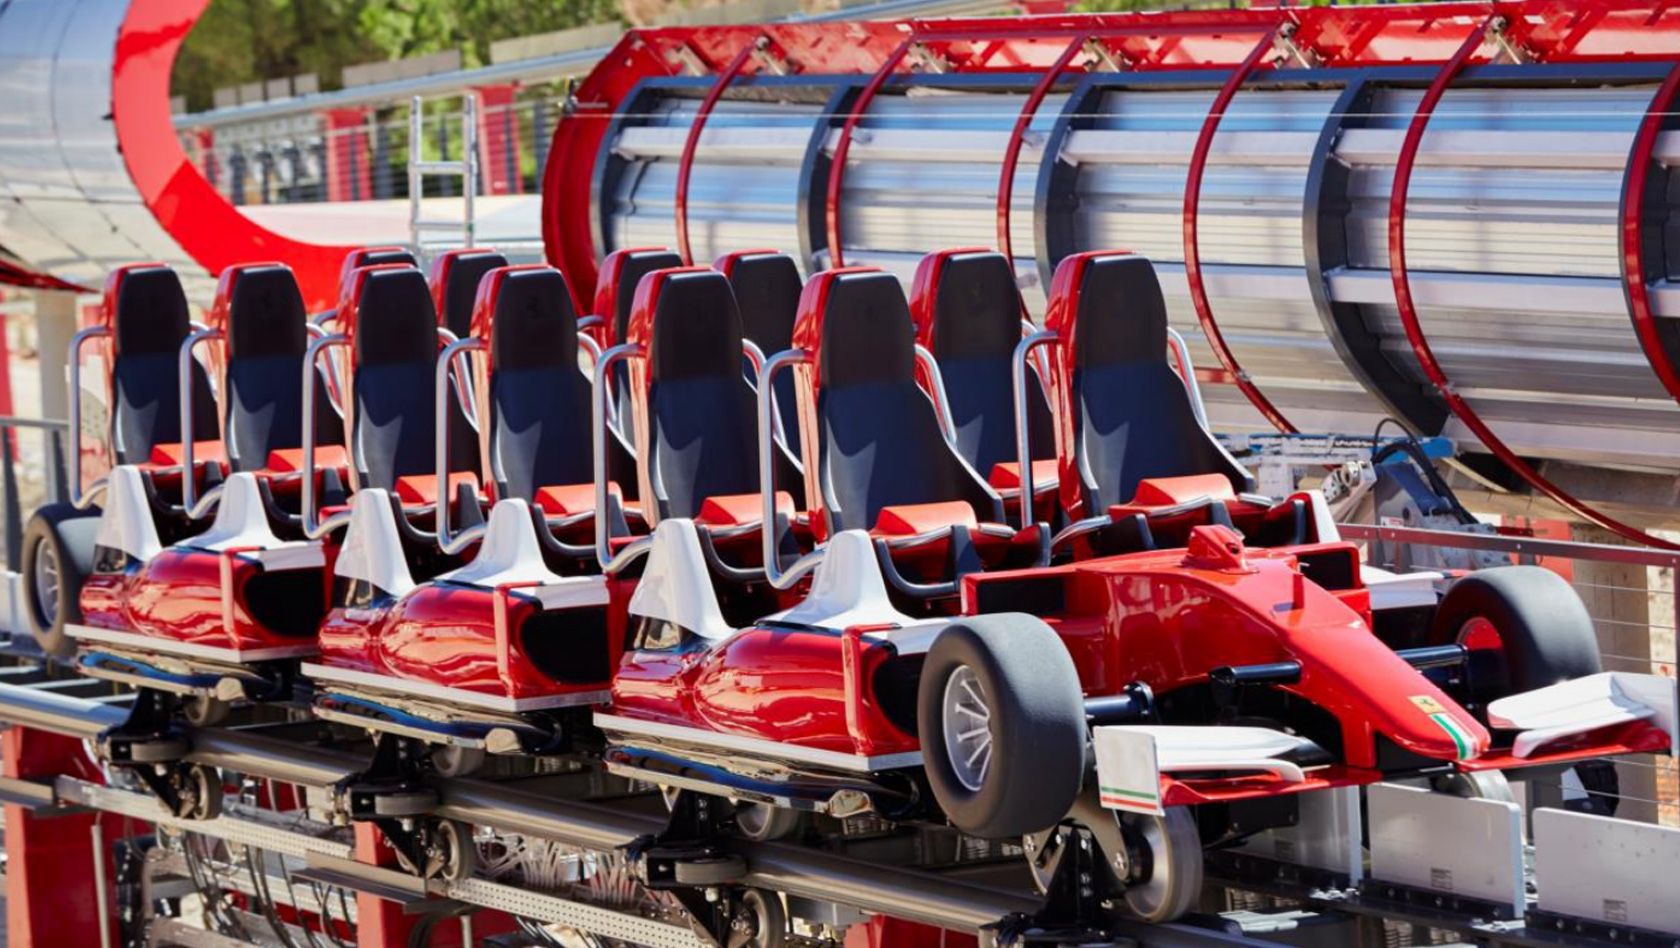 portaventura enth llt zug neuer ferrari land achterbahn testphase startet in k rze. Black Bedroom Furniture Sets. Home Design Ideas